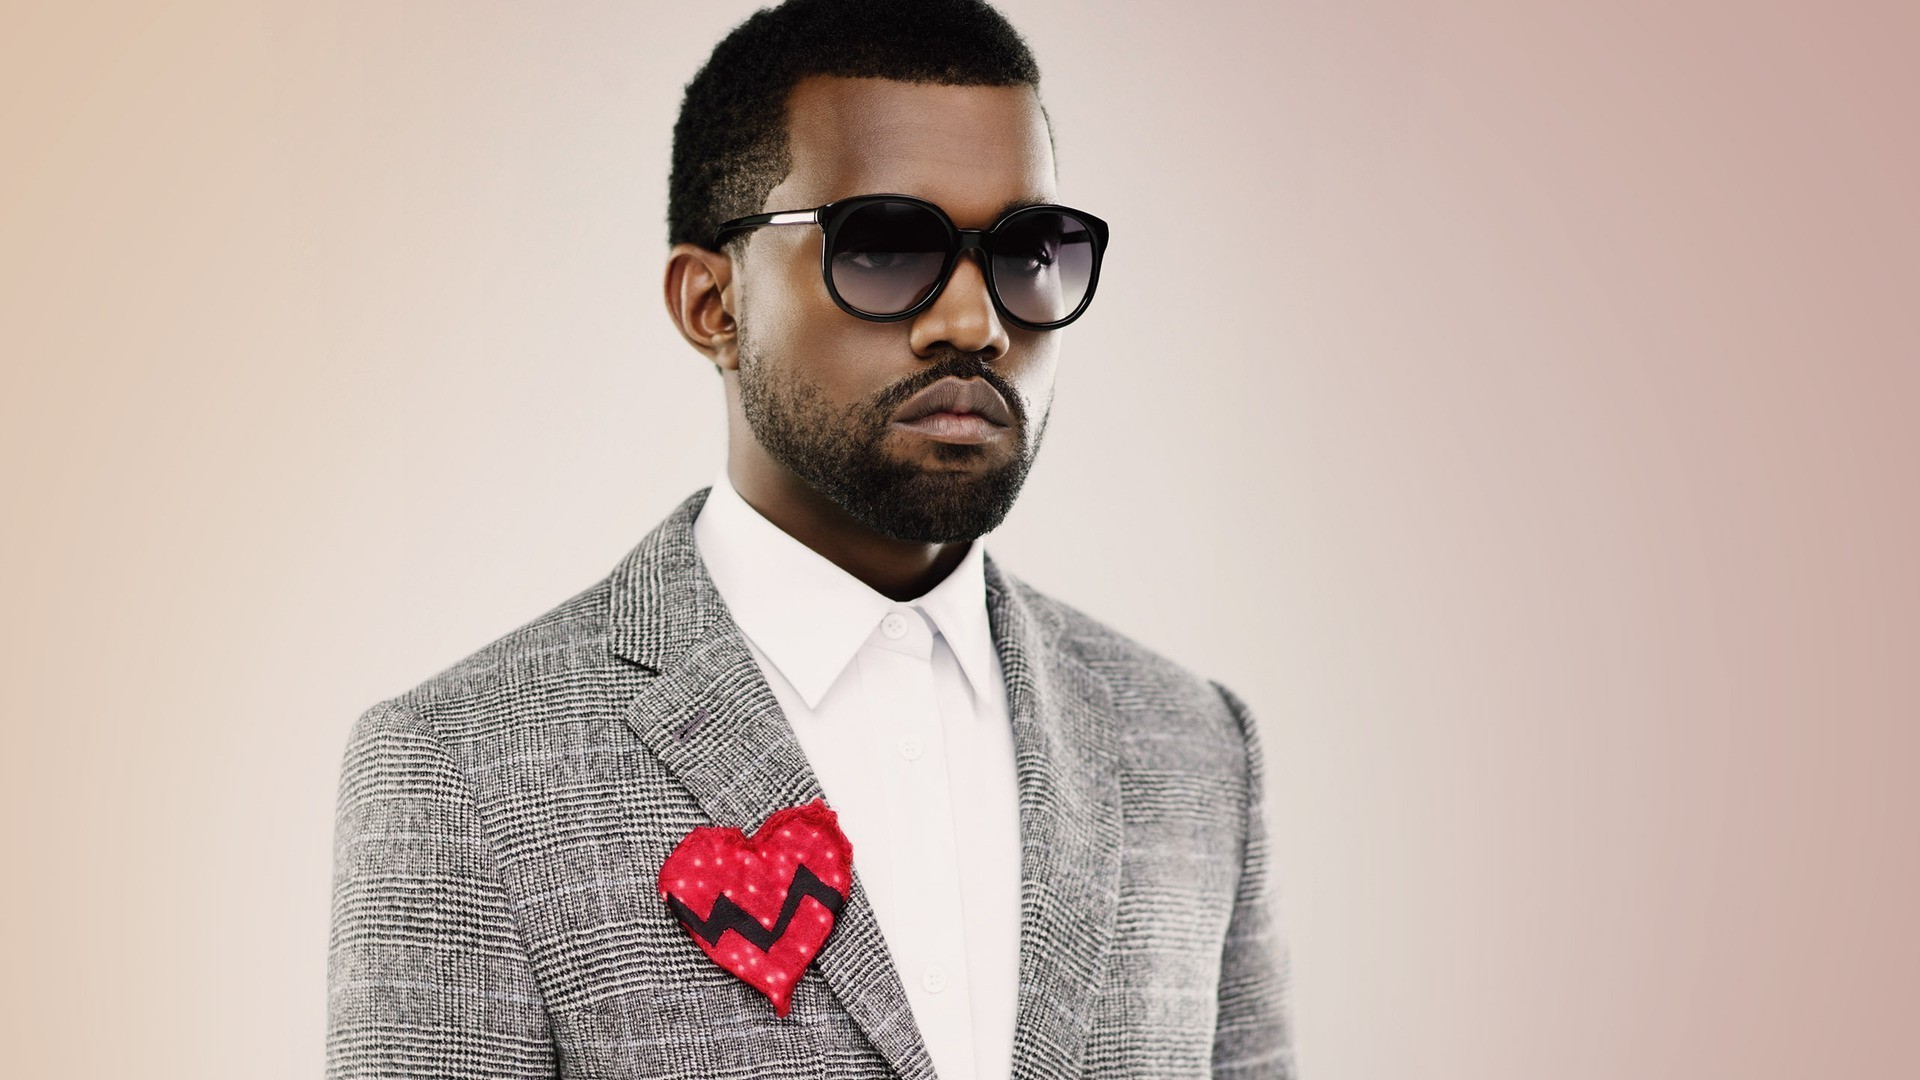 Kanye West Wallpaper – Wallpaper, High Definition, High Quality .